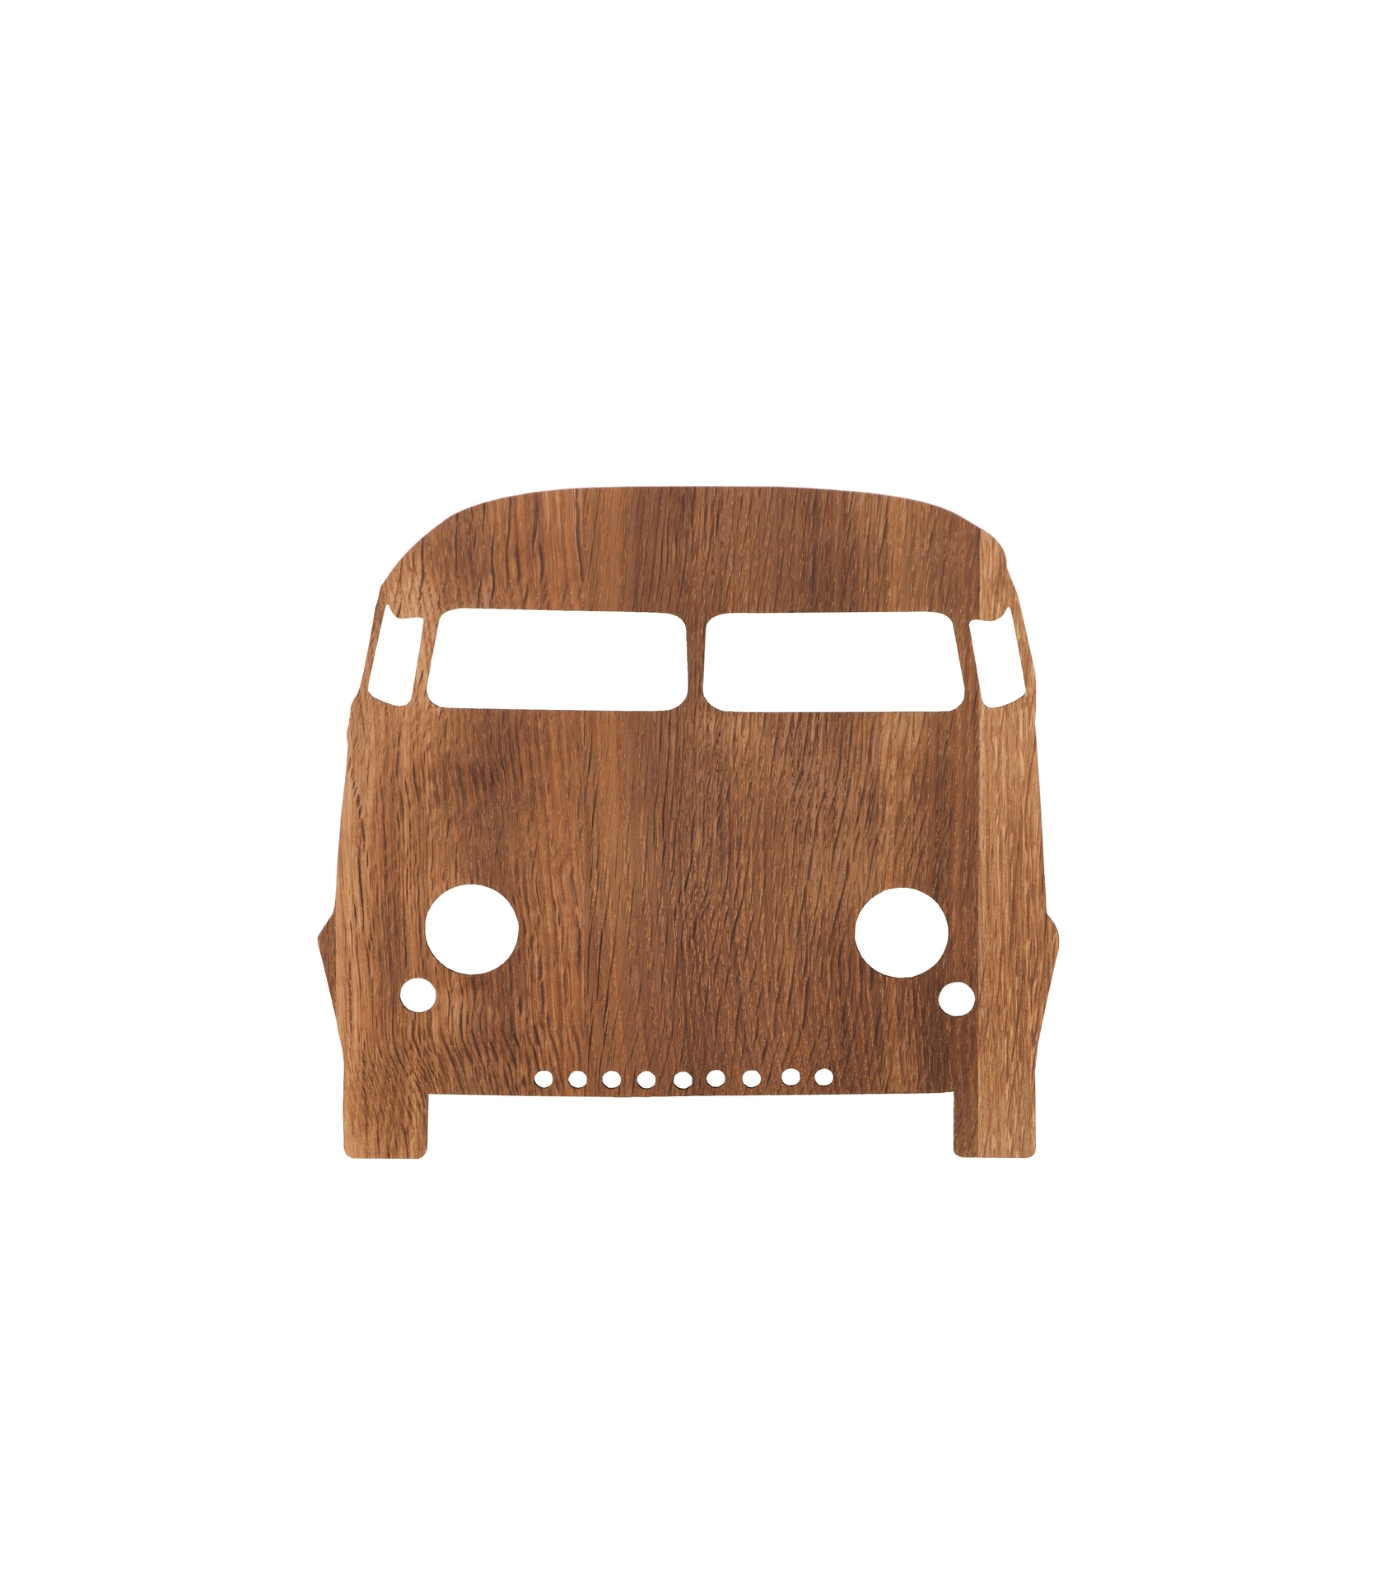 Barnlampa Car Lamp smoked oak, Ferm Living